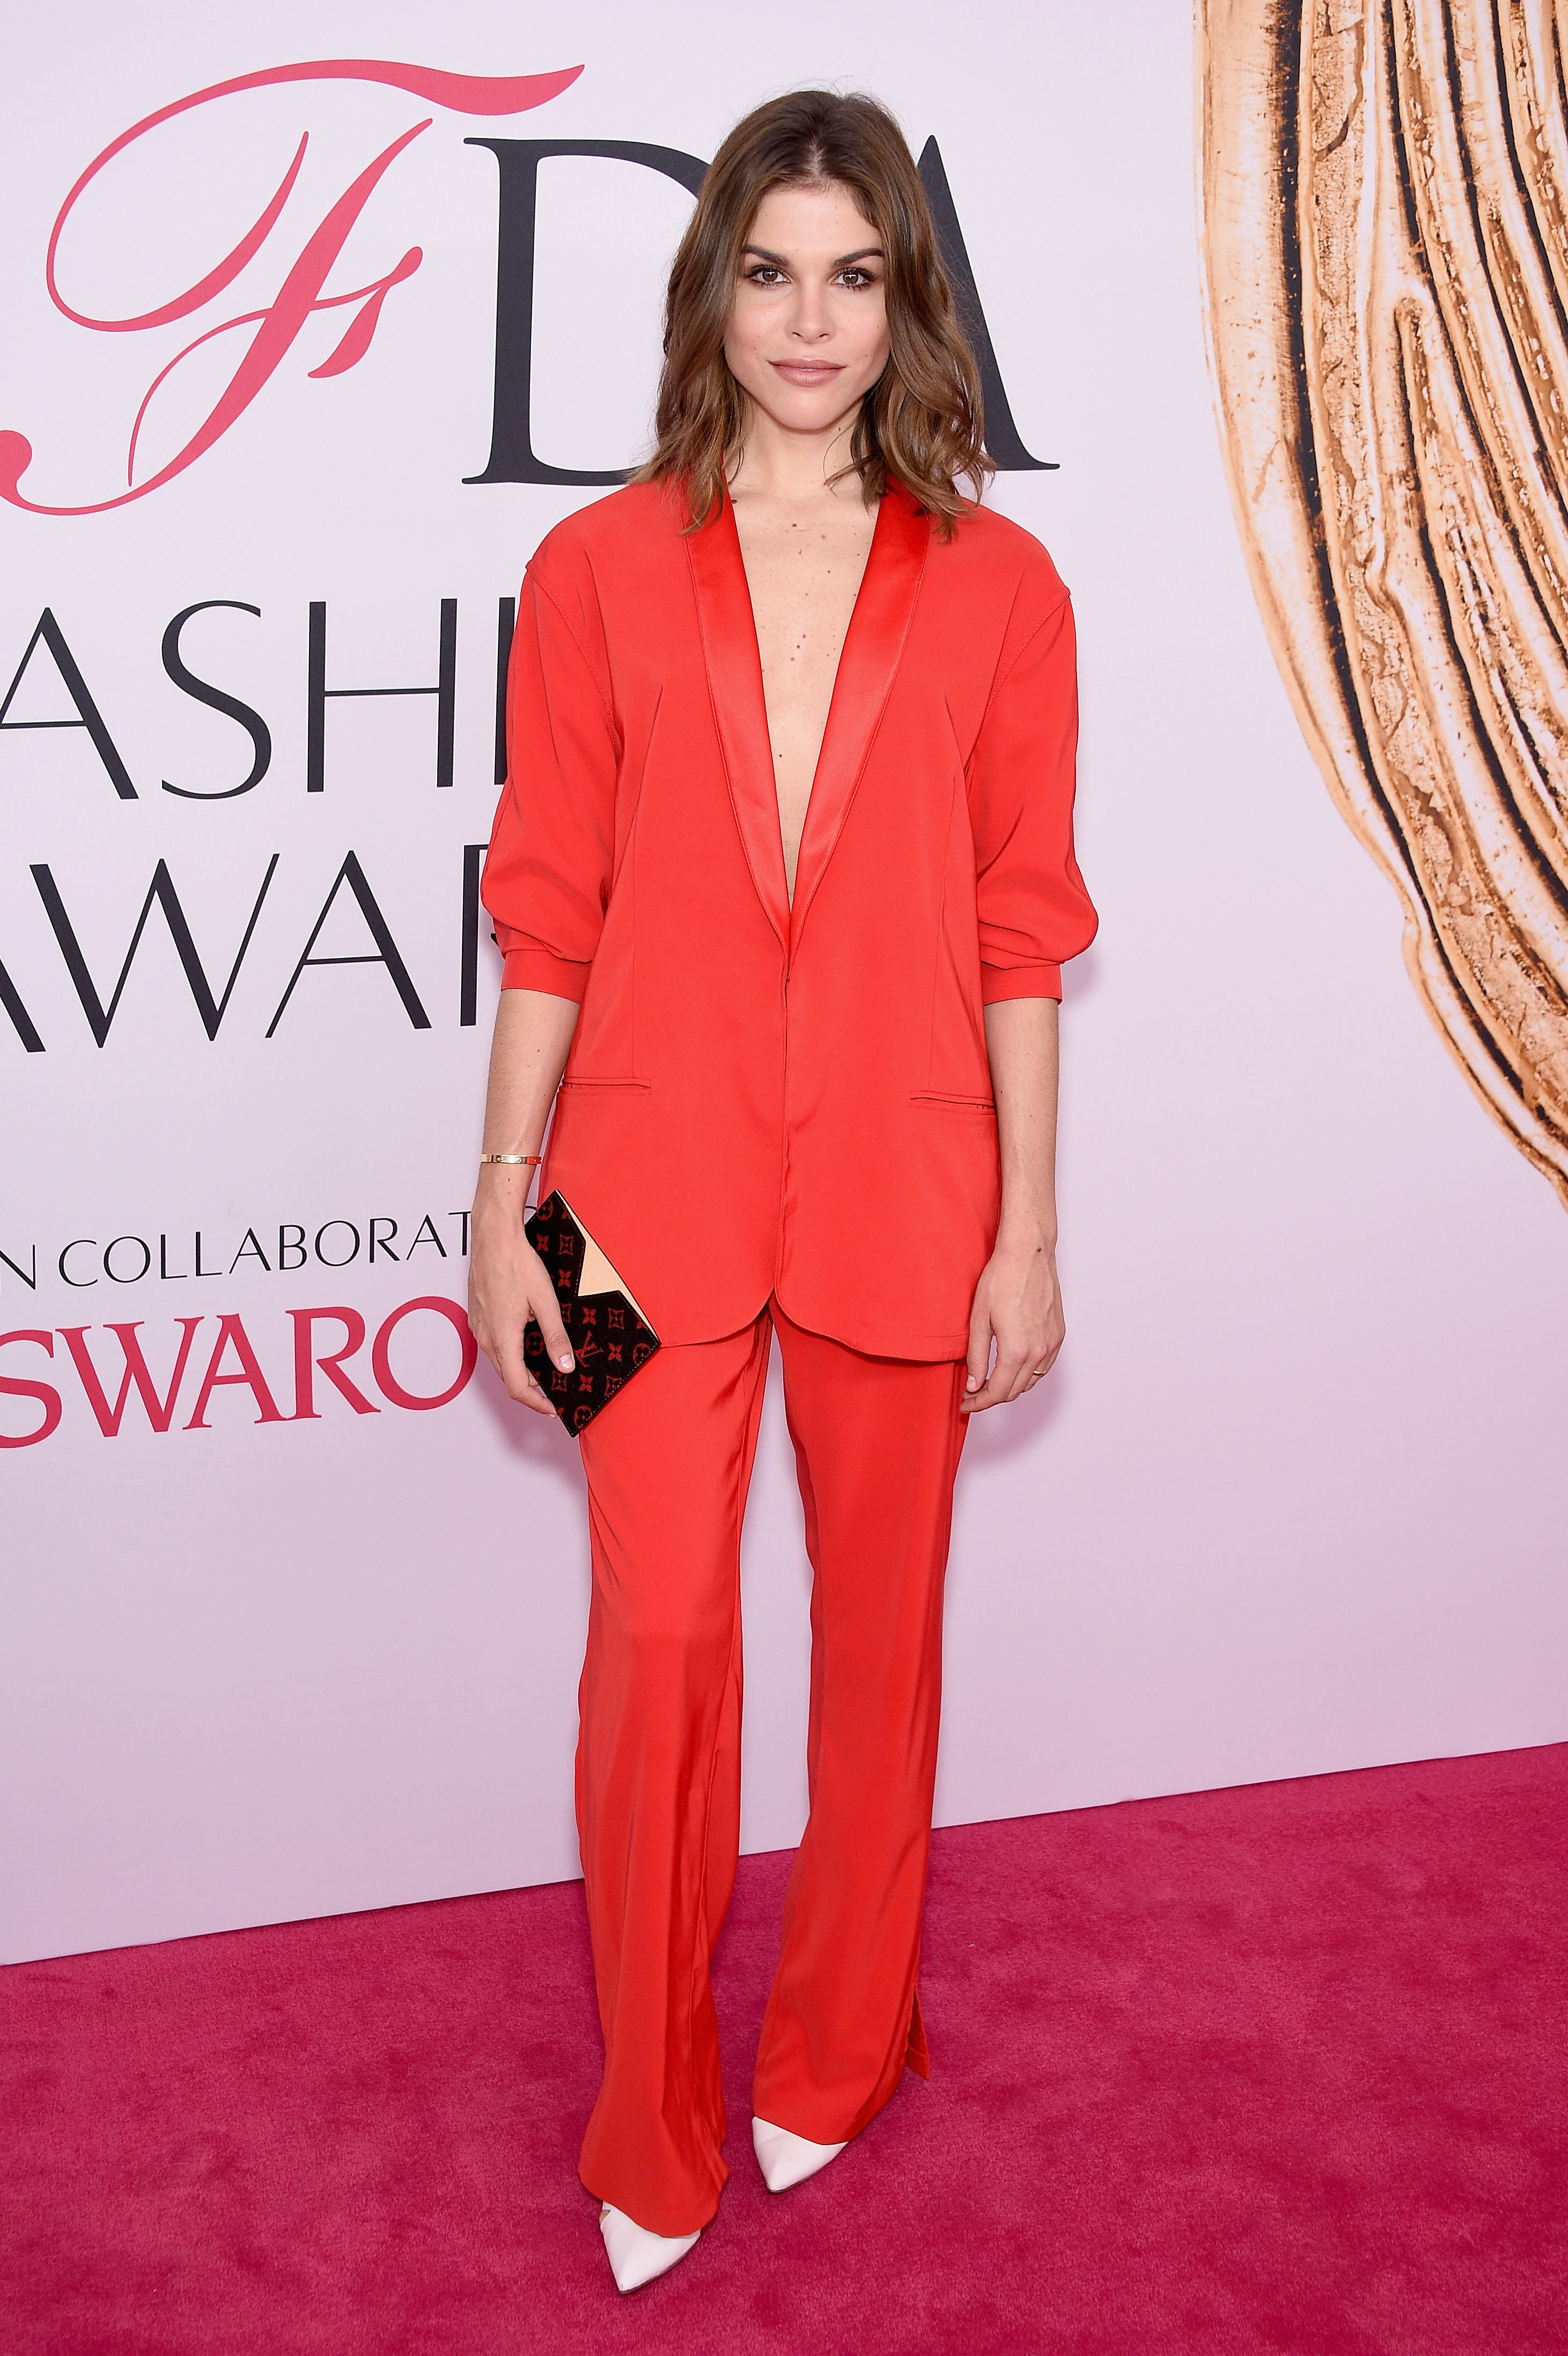 Emily Weiss attends the 2016 CFDA Fashion Awards in plunging red